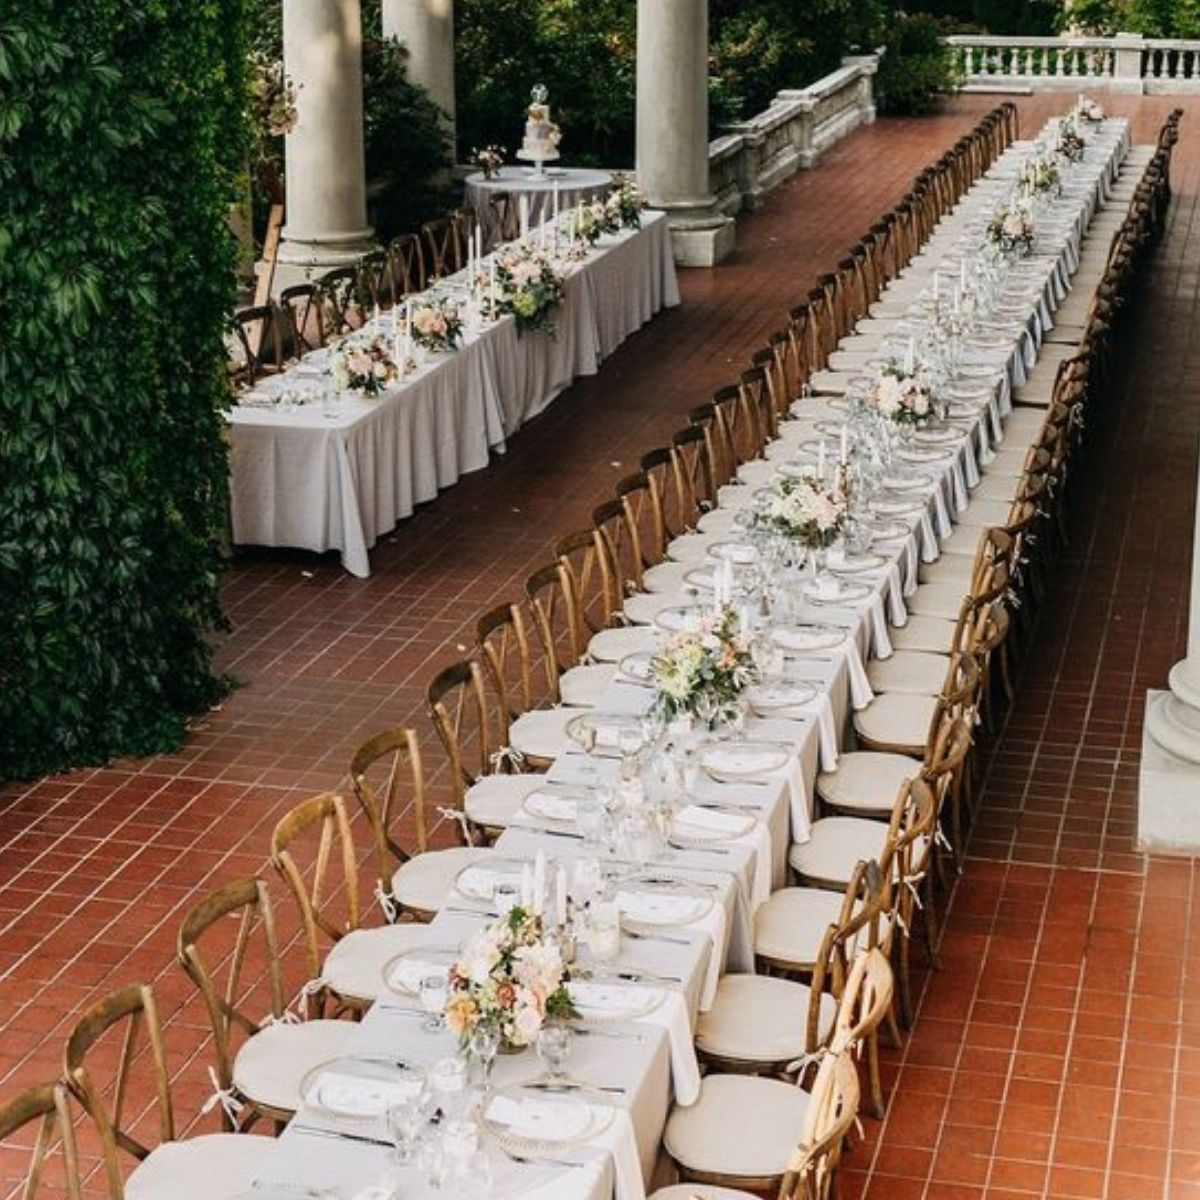 Wedding Reception Seating Configuration Ideas - one long table